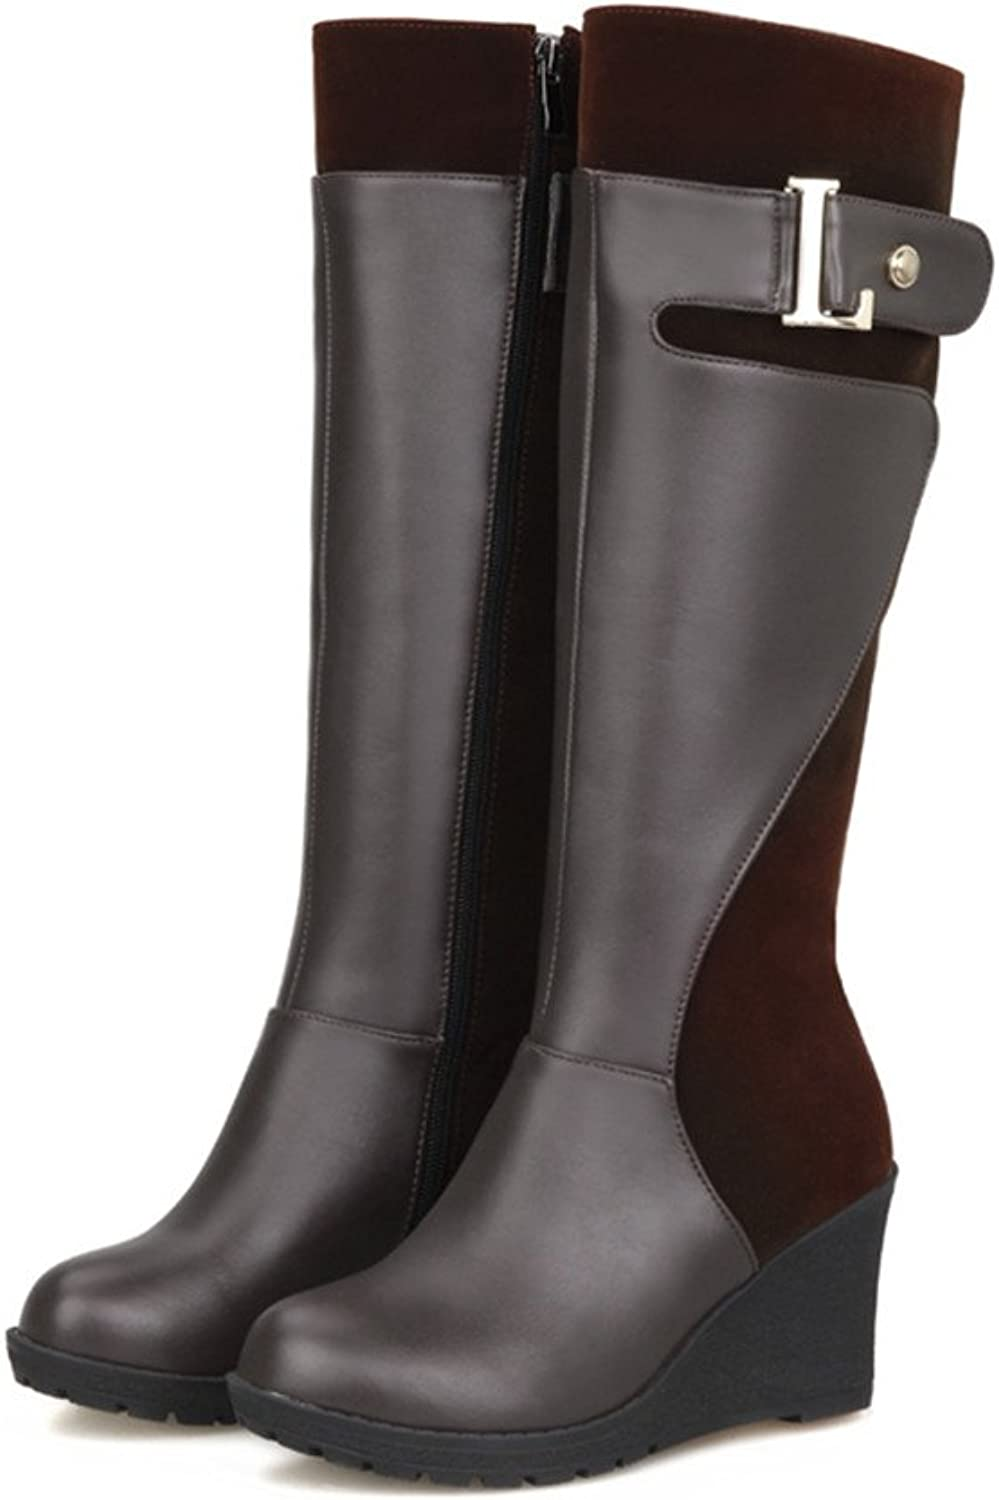 Fashion Heel Womens Round Toe Wedge Heel Knee High Boot